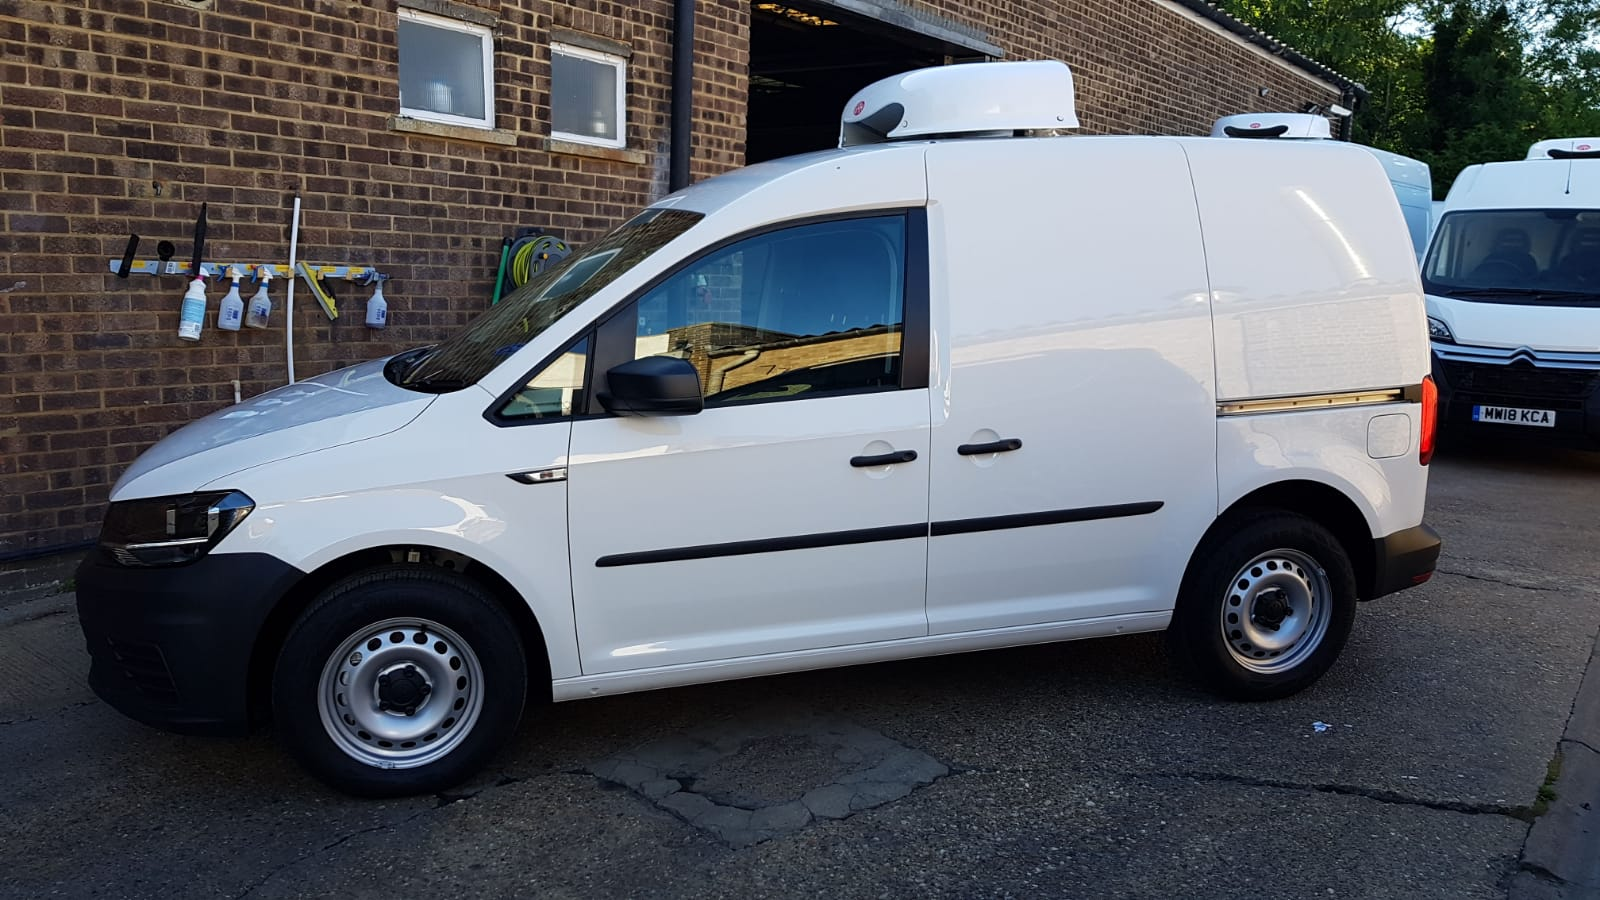 2018 Volkswagen Caddy 2.0 TDi Freezer Van For Sale